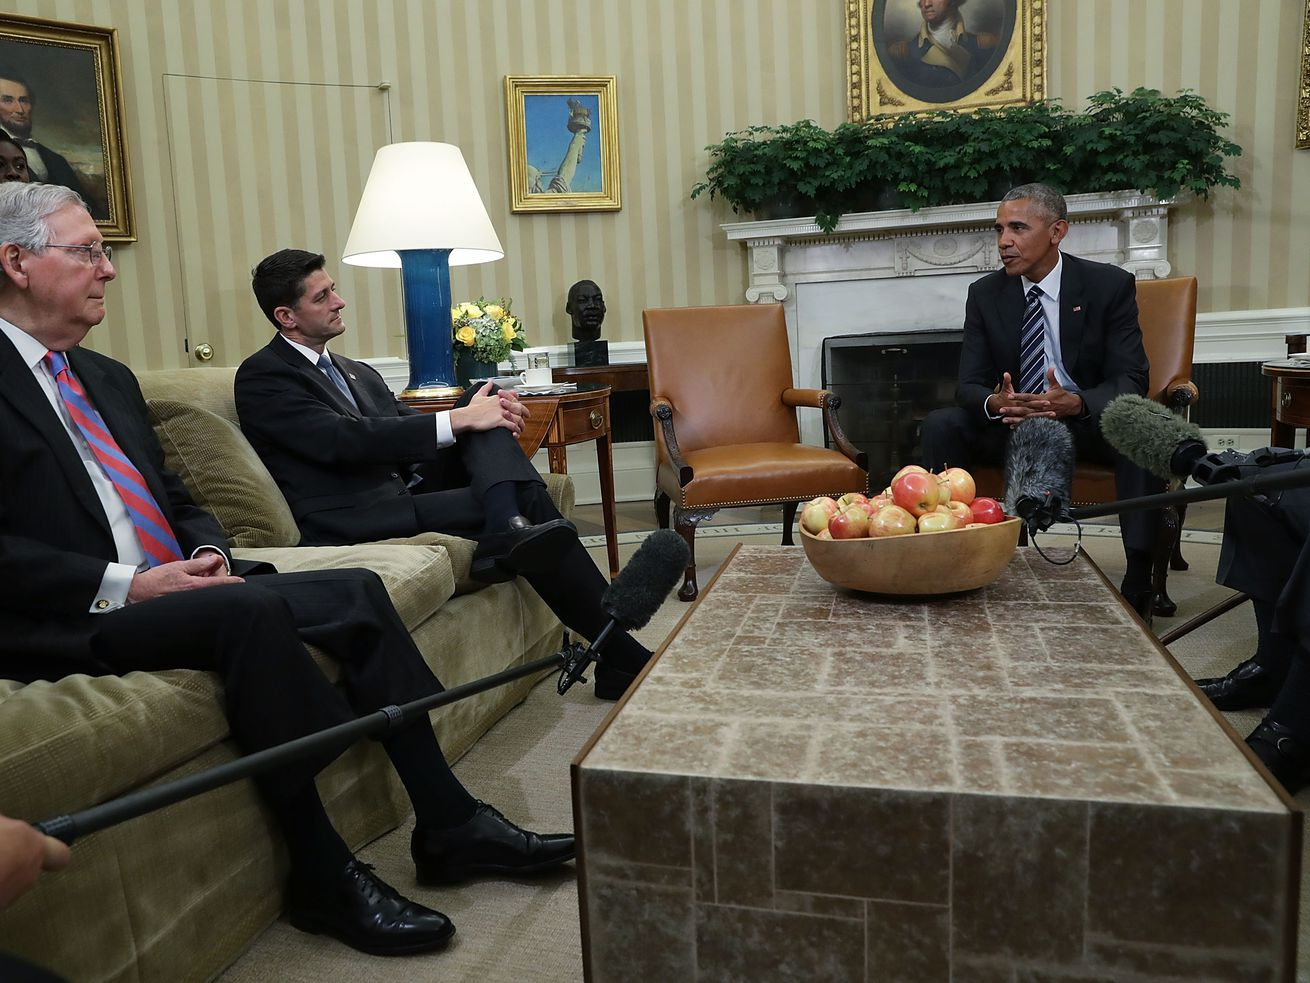 Sen. Mitch McConnell (R-KY), left, and Rep. Paul Ryan (R-WI) listen to President Barack Obama during an Oval Office meeting at the White House in 2016.